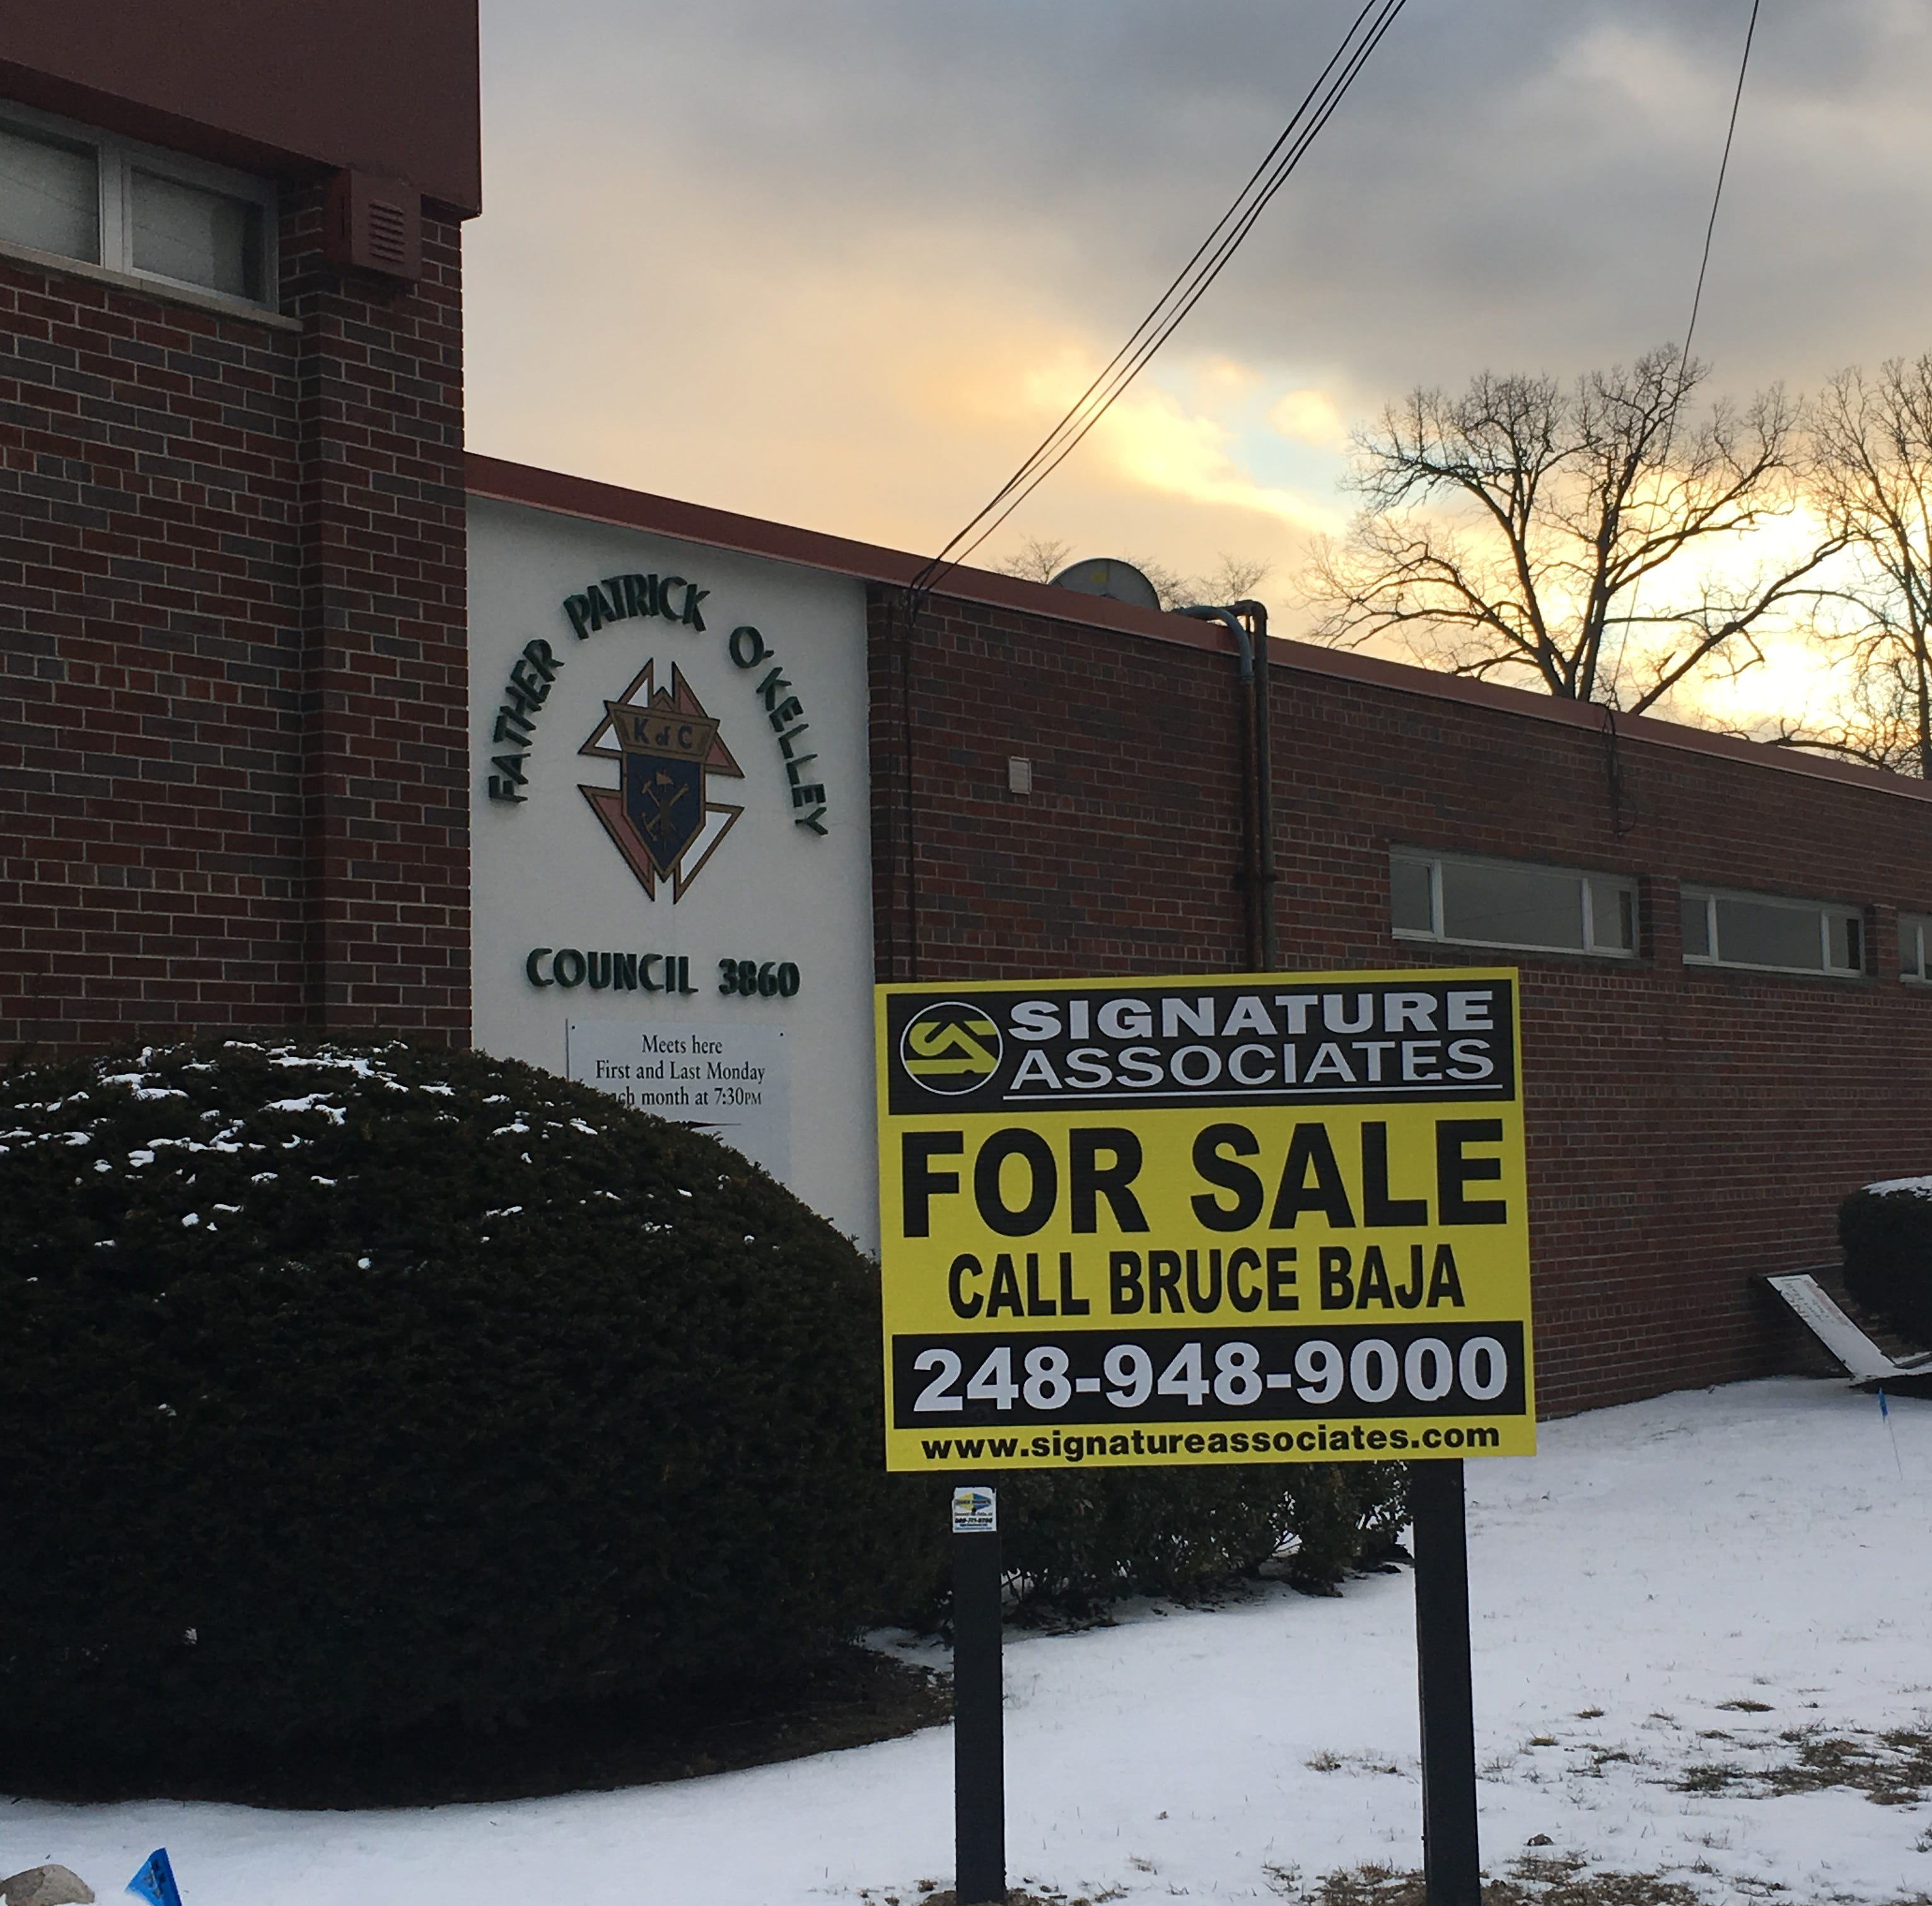 O'Kelley Knights of Columbus hall closing in Dearborn after 40 years